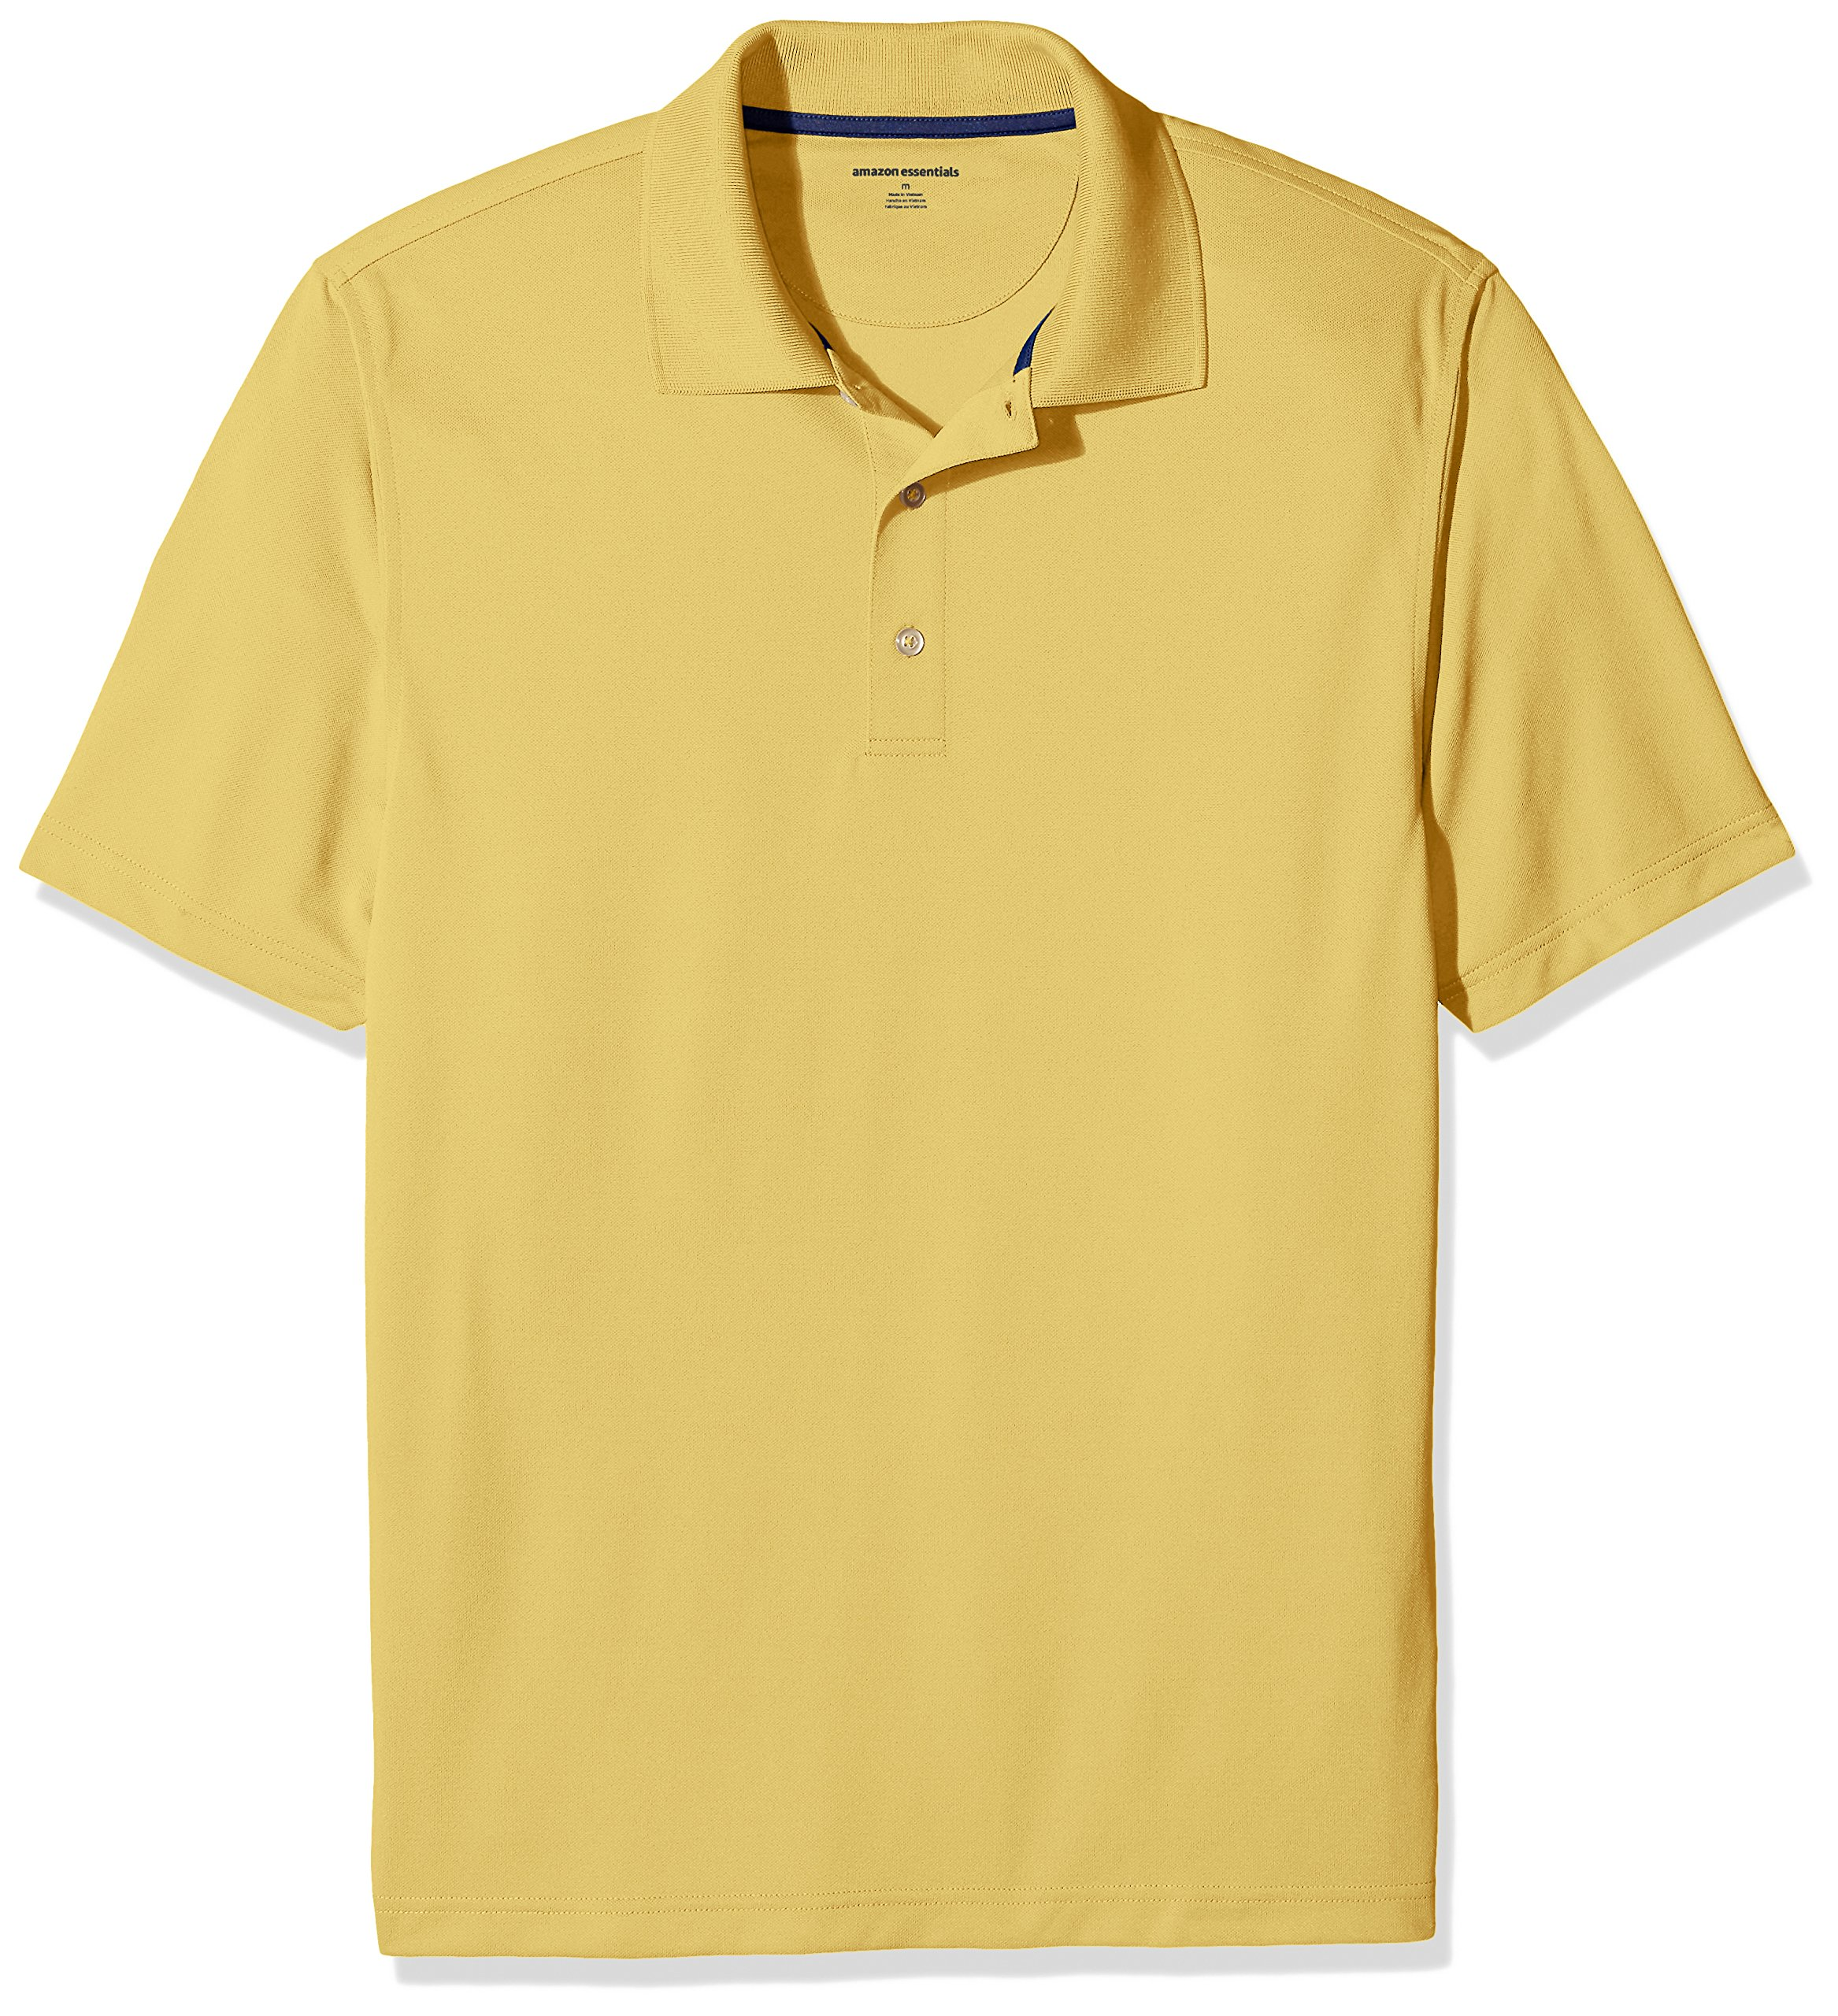 Amazon Essentials Men's Regular-Fit Quick-Dry Golf Polo Shirt, Yellow, Large by Amazon Essentials